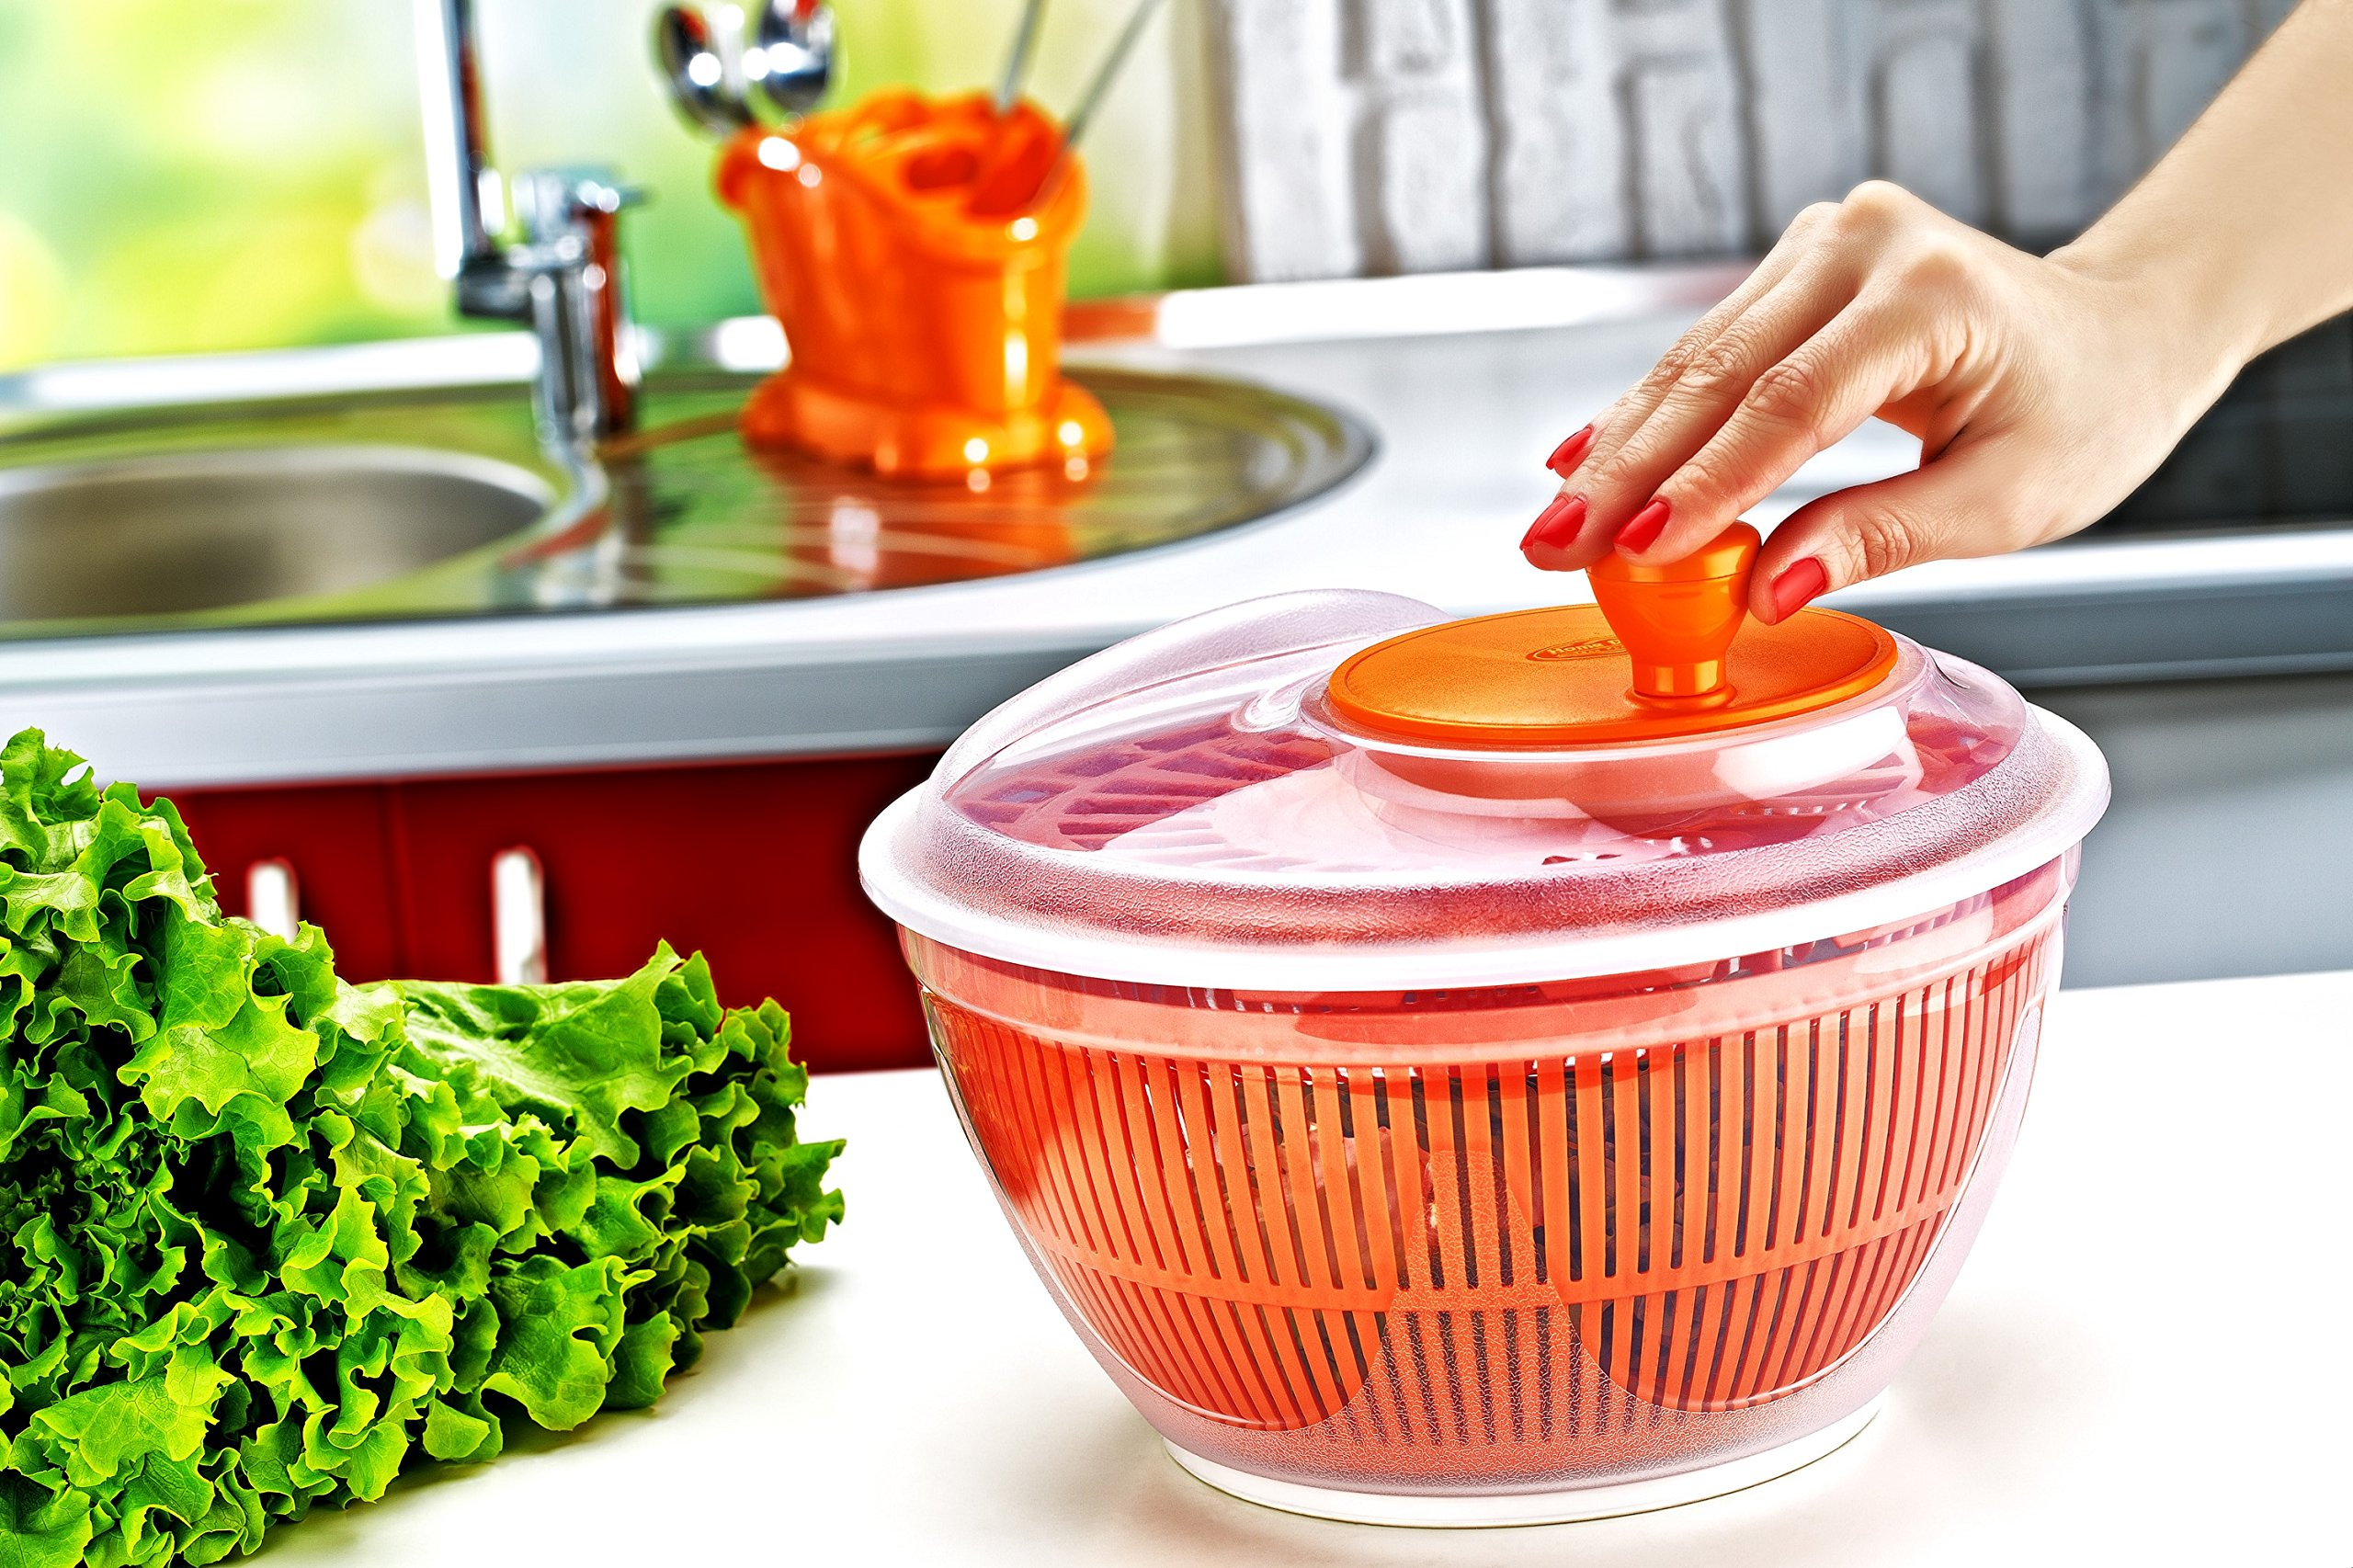 Large Salad Spinner Lettuce Dryer Easy Spin Salad Spinner Large Vegetable Washer Manual Salad spinner Vegetable Dryer (Colors May Vary)